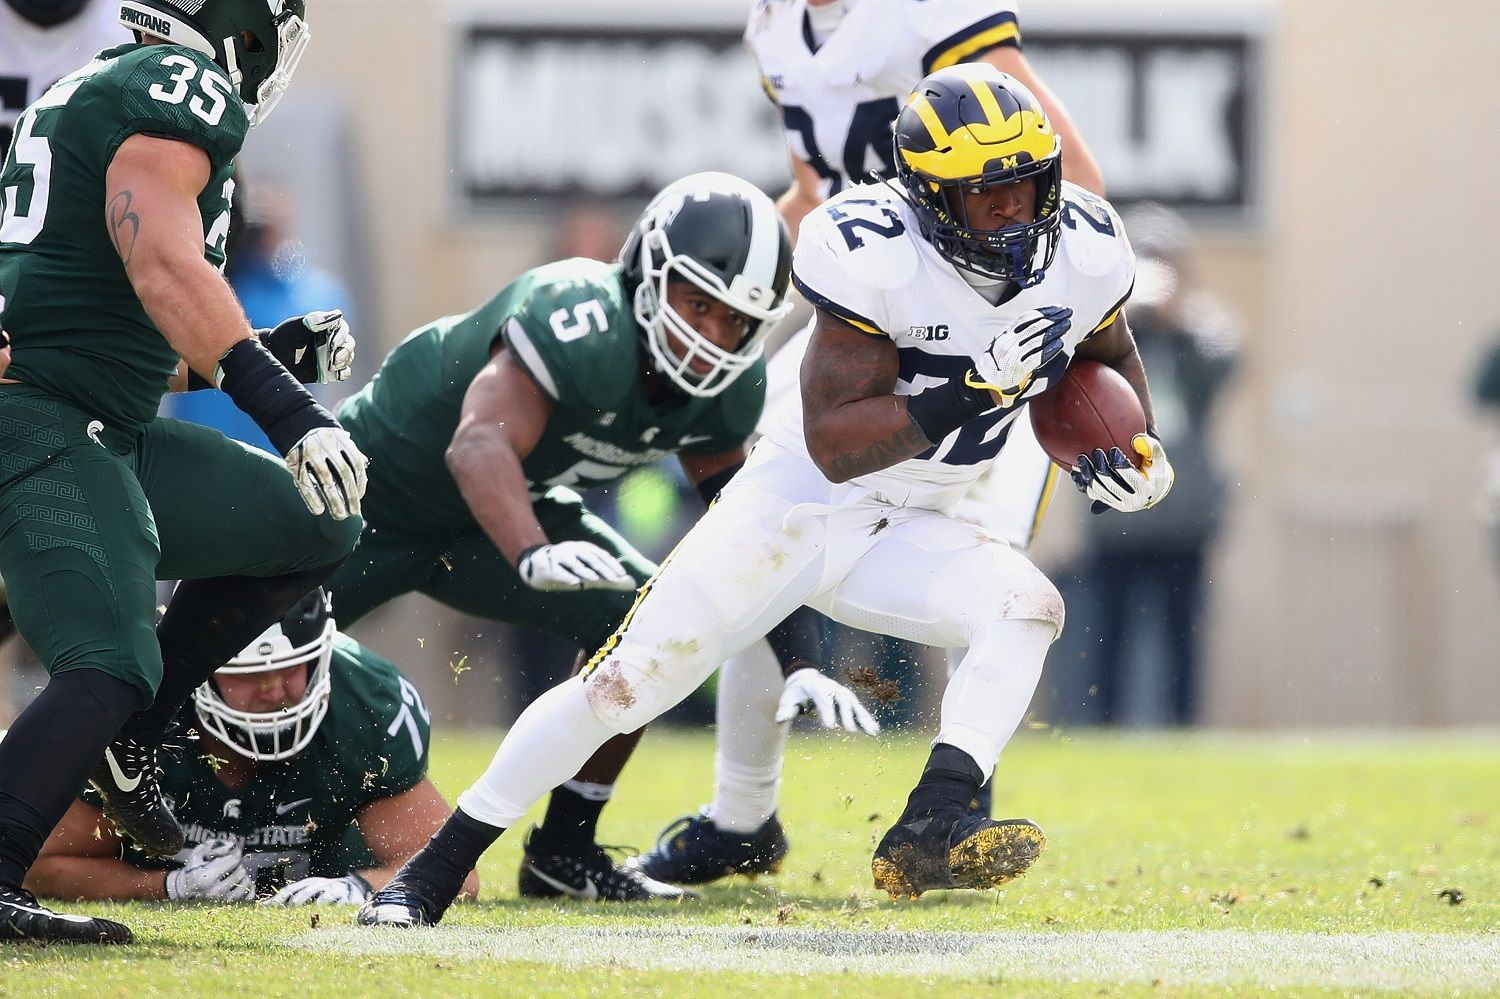 EAST LANSING, MI - OCTOBER 20: Karan Higdon #22 of the Michigan Wolverines escapes the tackle of Andrew Dowell #5 of the Michigan State Spartans during a second quarter run at Spartan Stadium on October 20, 2018 in East Lansing, Michigan. (Photo by Gregory Shamus/Getty Images)